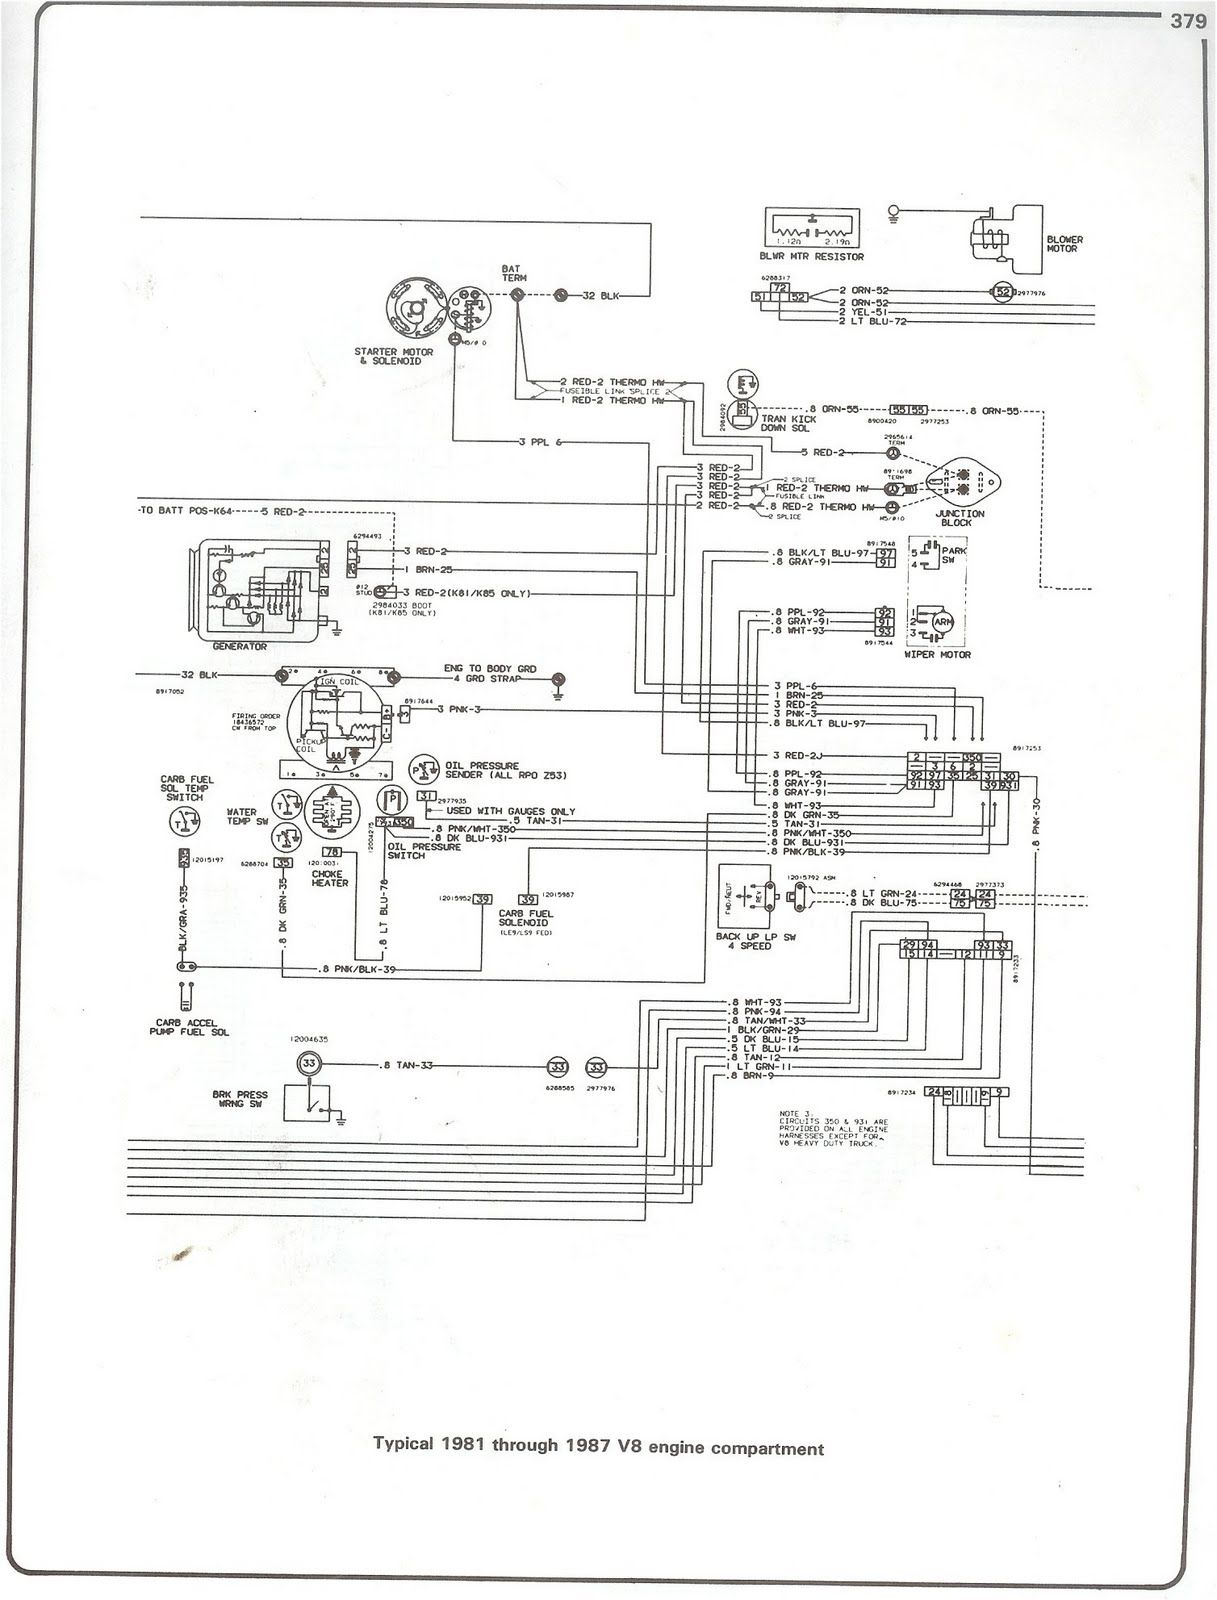 257d74327e36061e67ffe8e0af717d36 this is engine compartment wiring diagram for 1981 trough 1987